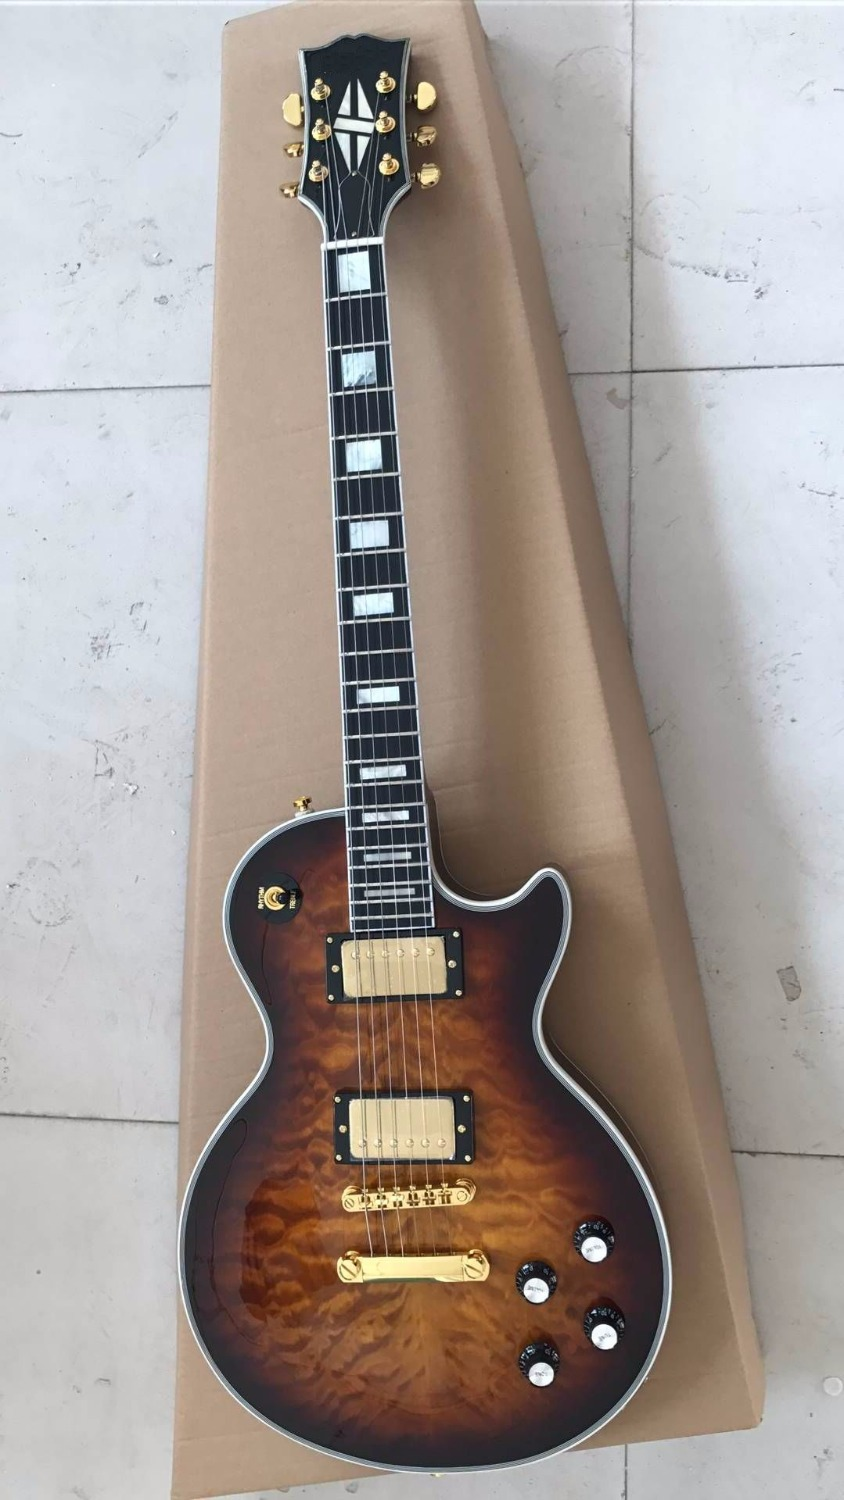 Wholesale Cheap Guitar Gbs LP Custom Electric Guitar Ebony Fingerboard/Fretside Binding In Brown Burst 170302 new arrival cnbald lp supreme electric guitar top quality lp guitar in deep brown 110609 page 8